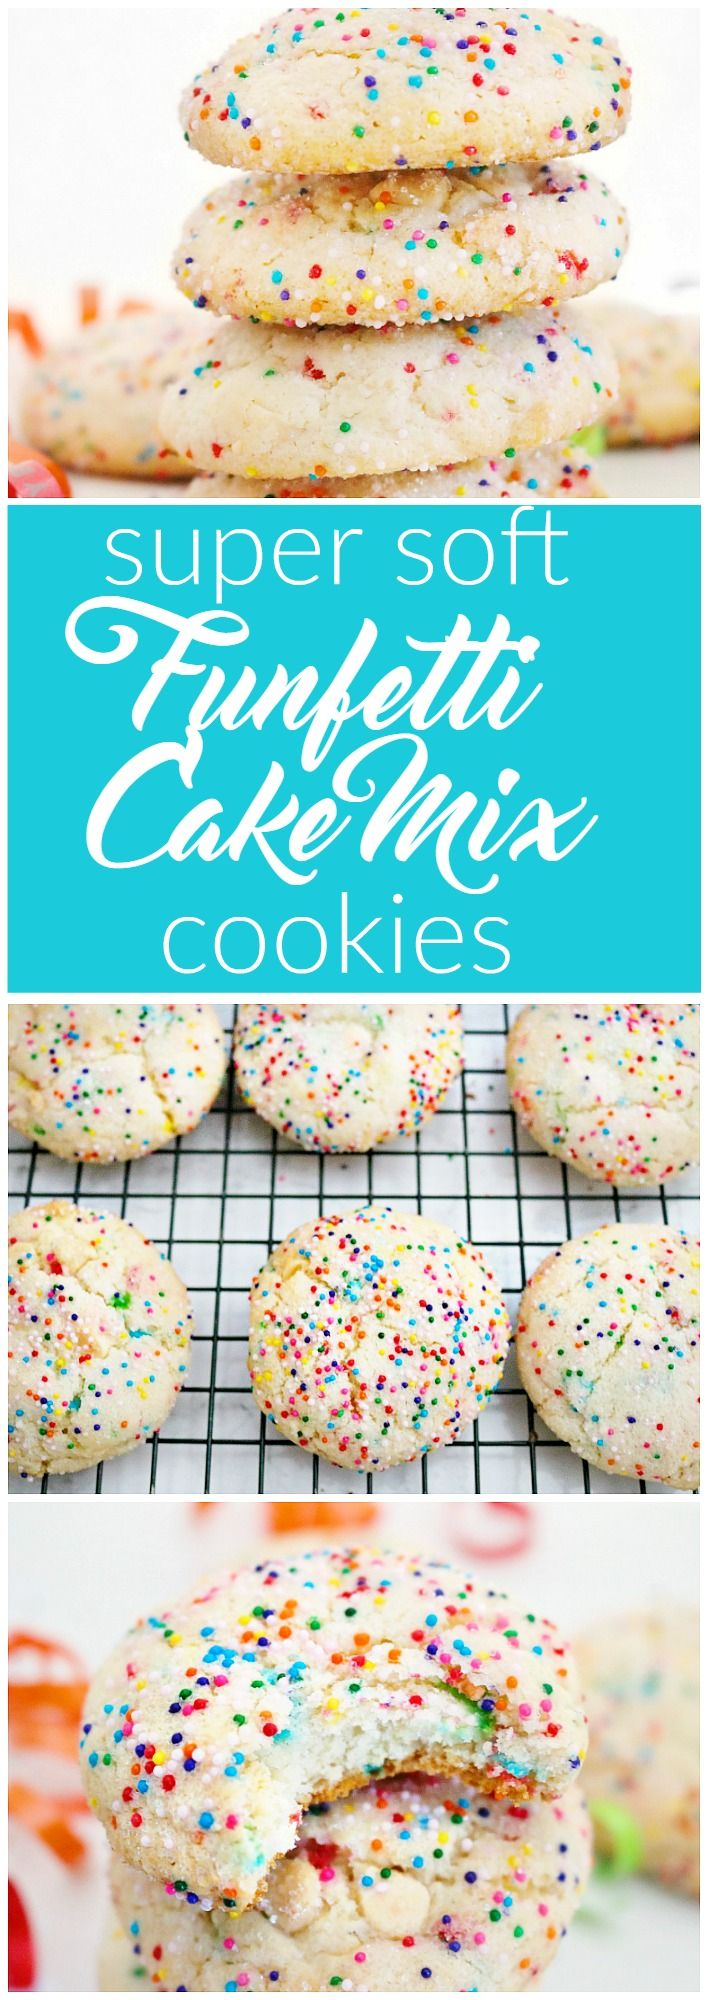 These funfetti cake mix cookies are super soft and moist, just like your favorite vanilla birthday cake! Next time you are craving cake, try these!